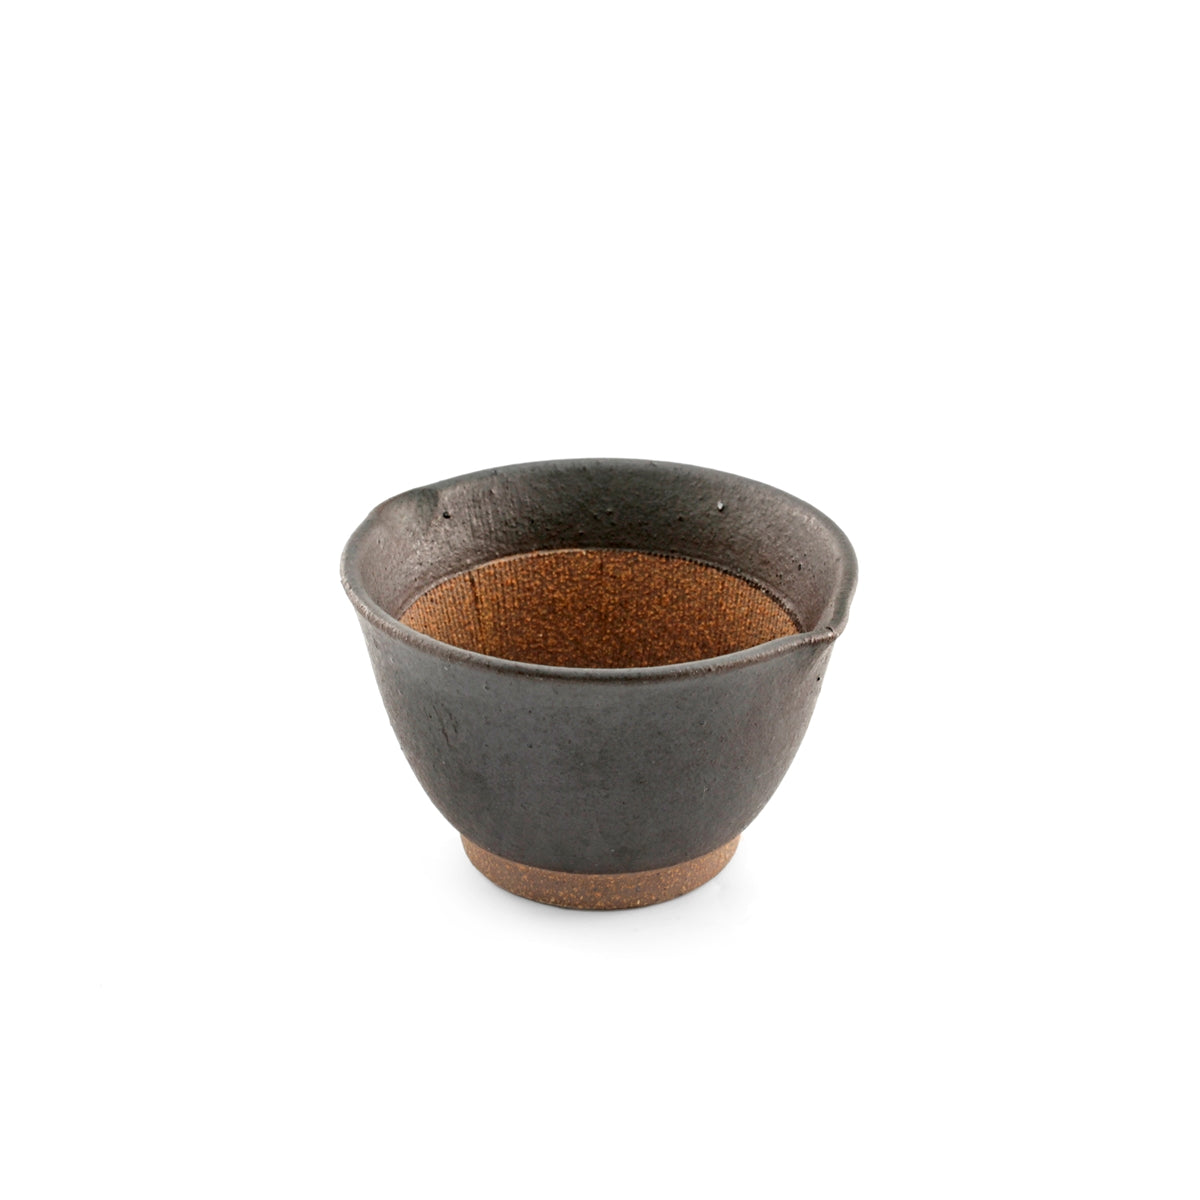 "Black Double Lipped Small Bowl with Japanese-style Mortar (Suribachi) 9 fl oz / 4.09"" dia"